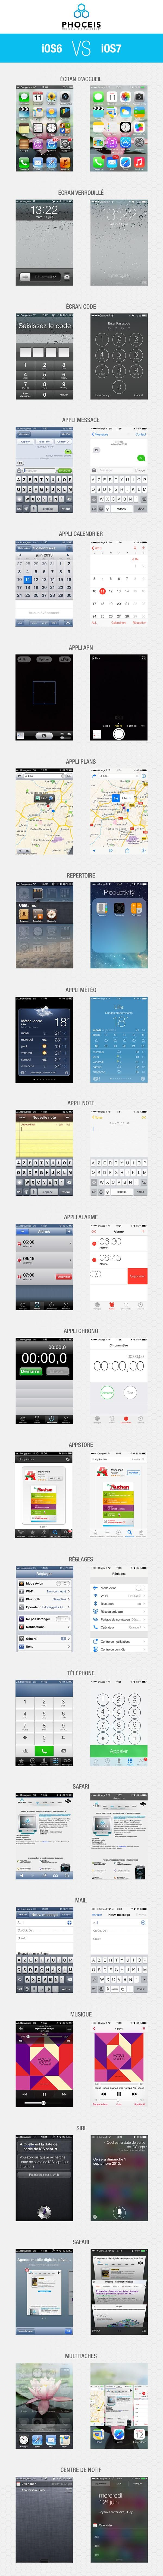 New IOS 7 design compared iOS  by screen to IOS 6.